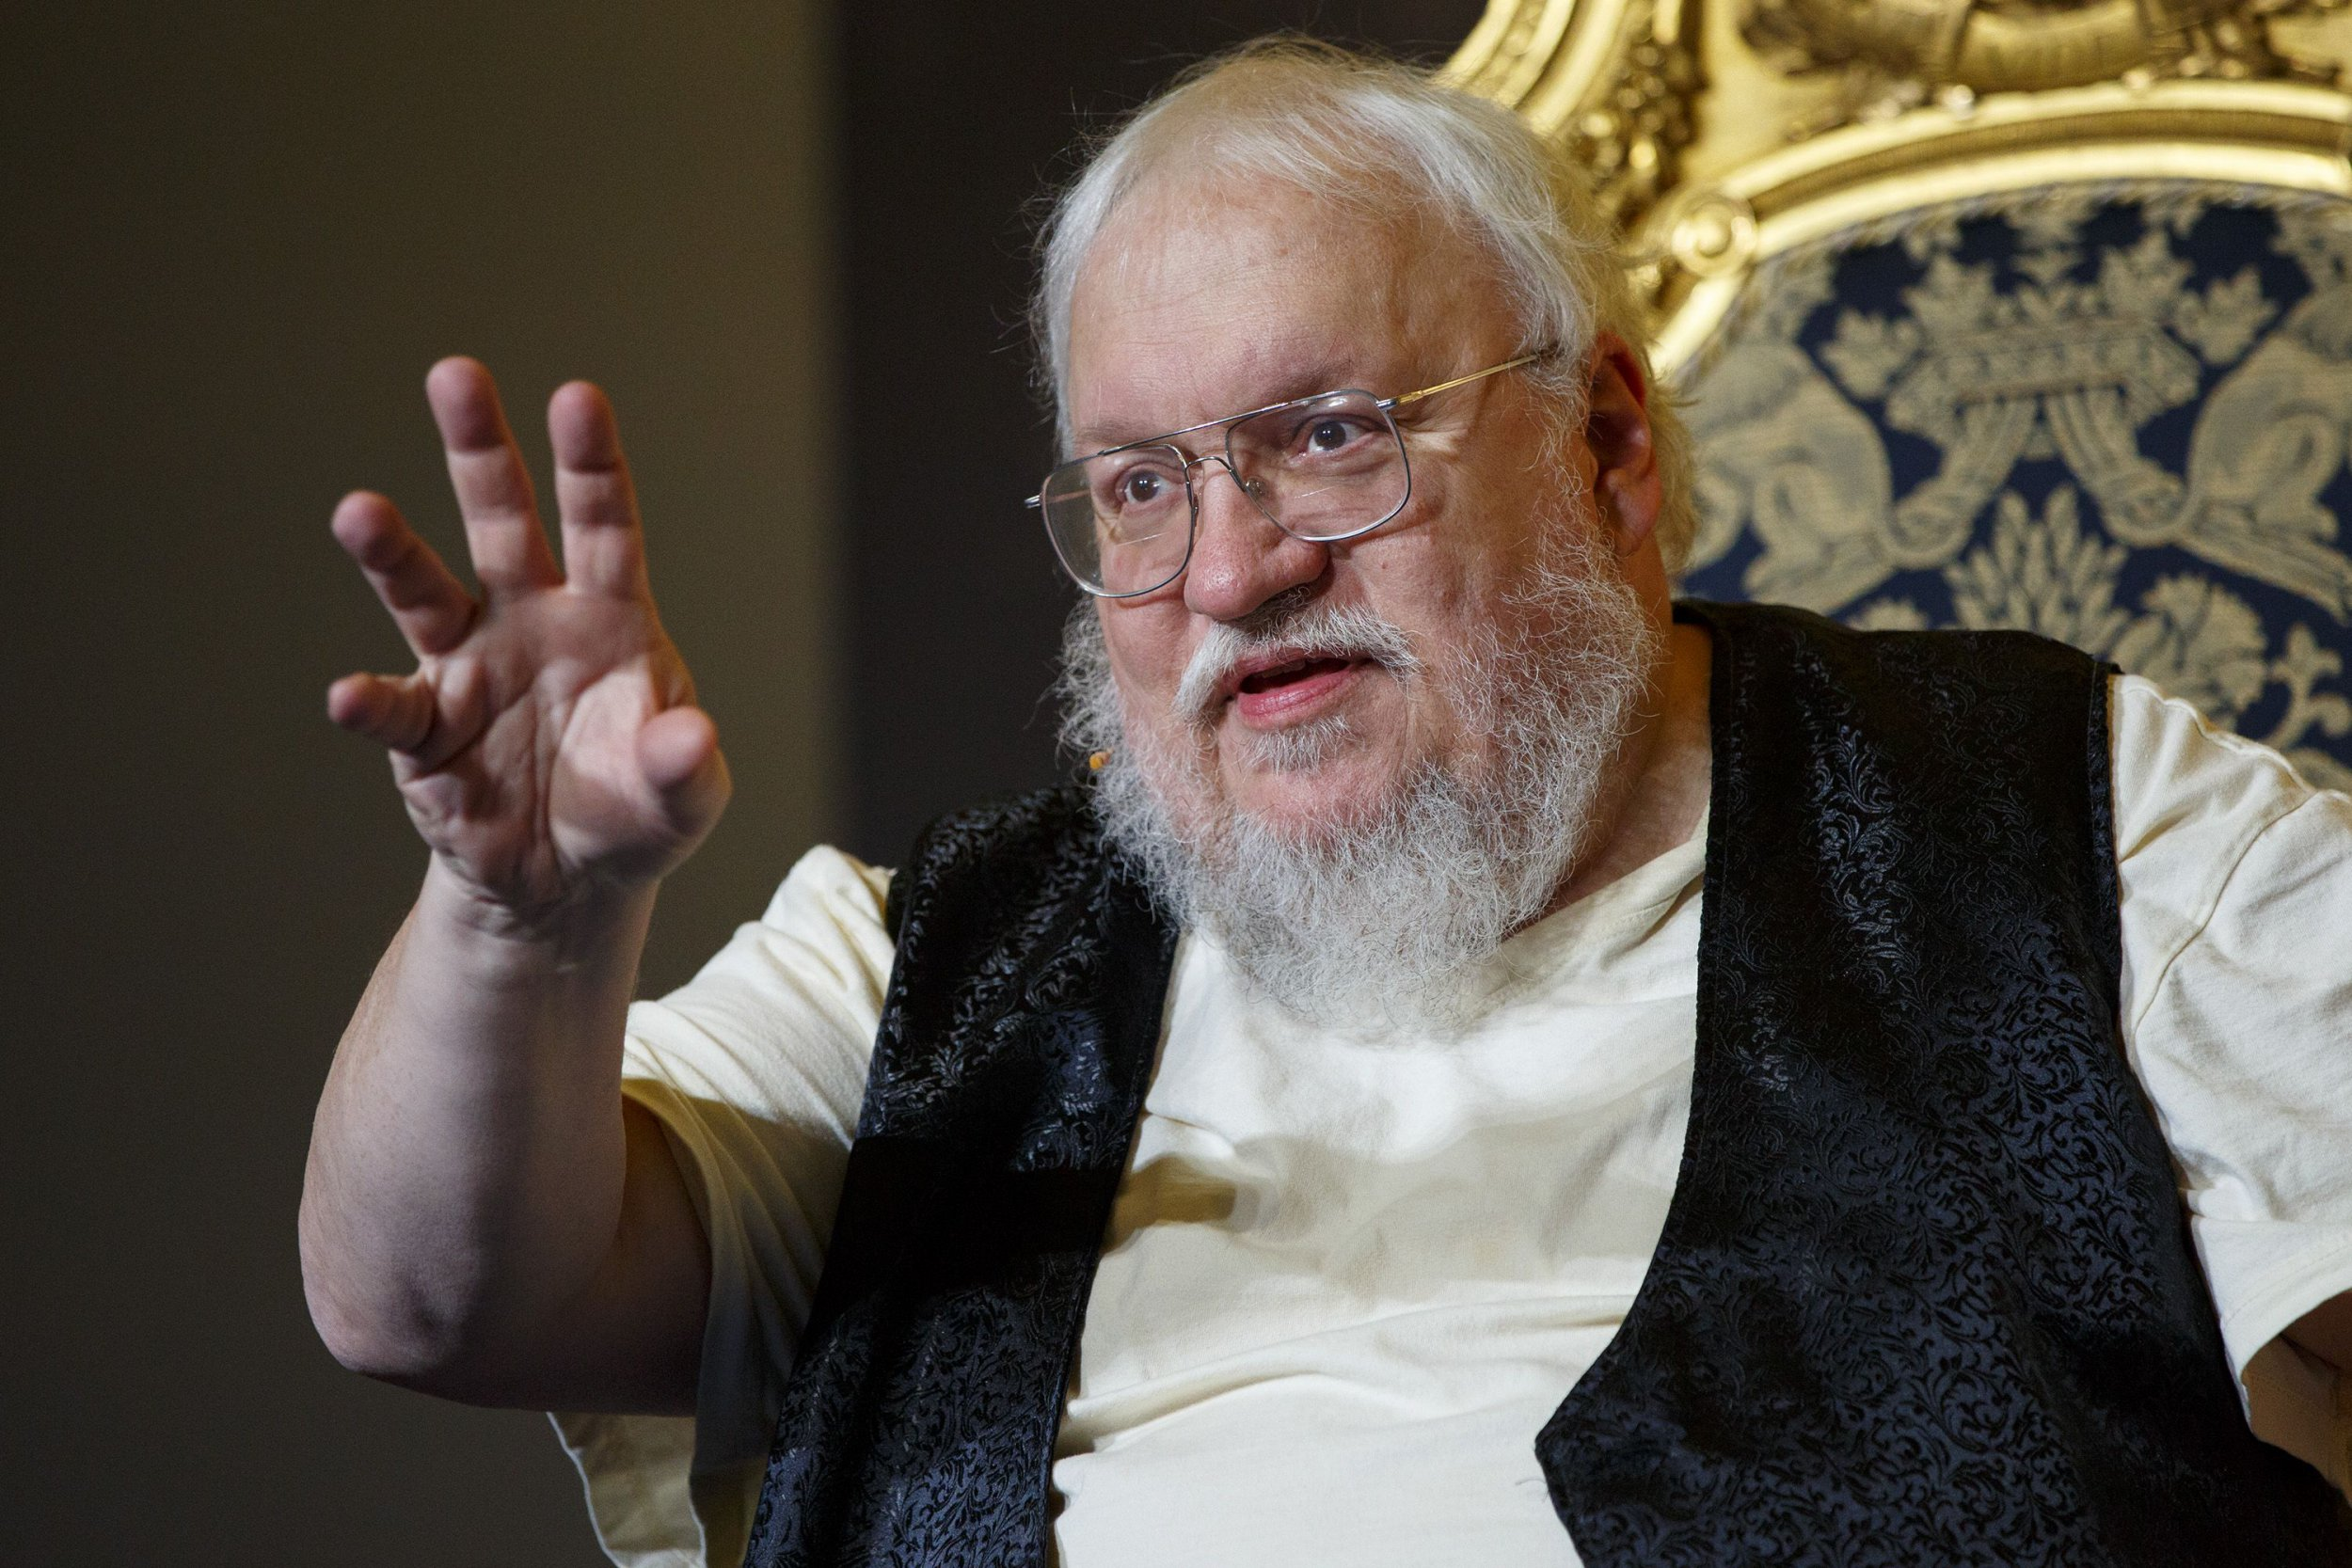 George RR Martin 'struggling' with final Game Of Thrones book